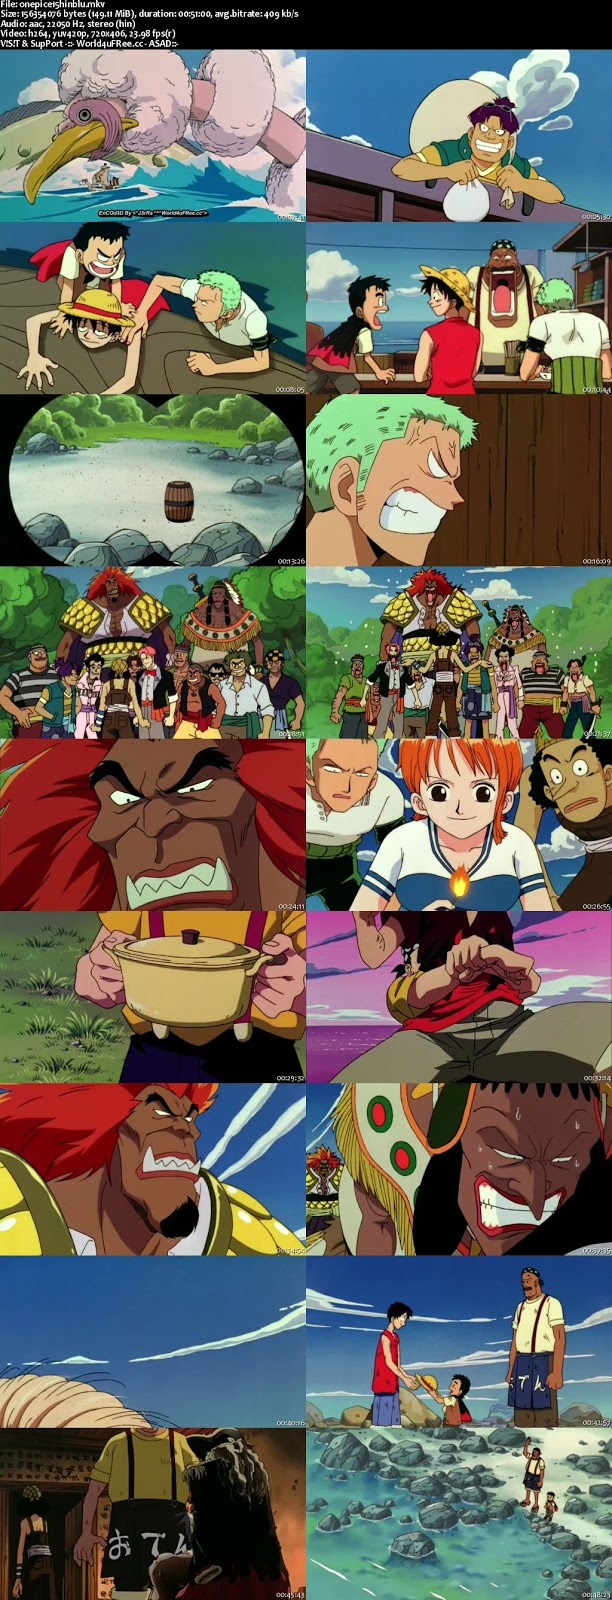 One Piece The Movie 2000 BRRip Hindi Dubbed 480p 150mb https://world4ufree.ws